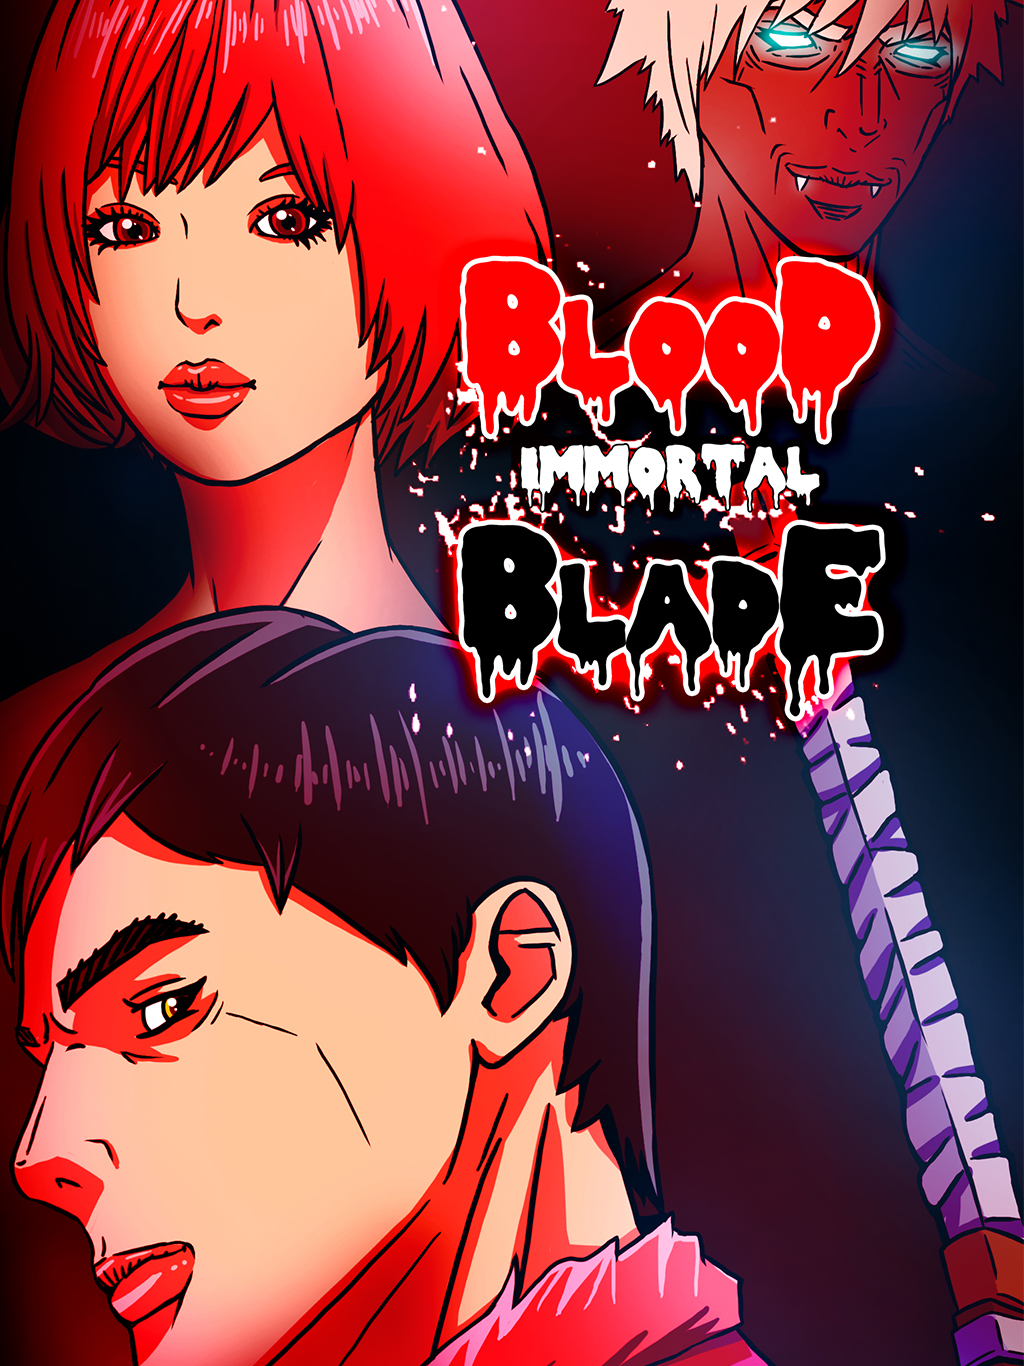 Blood immortal Blade